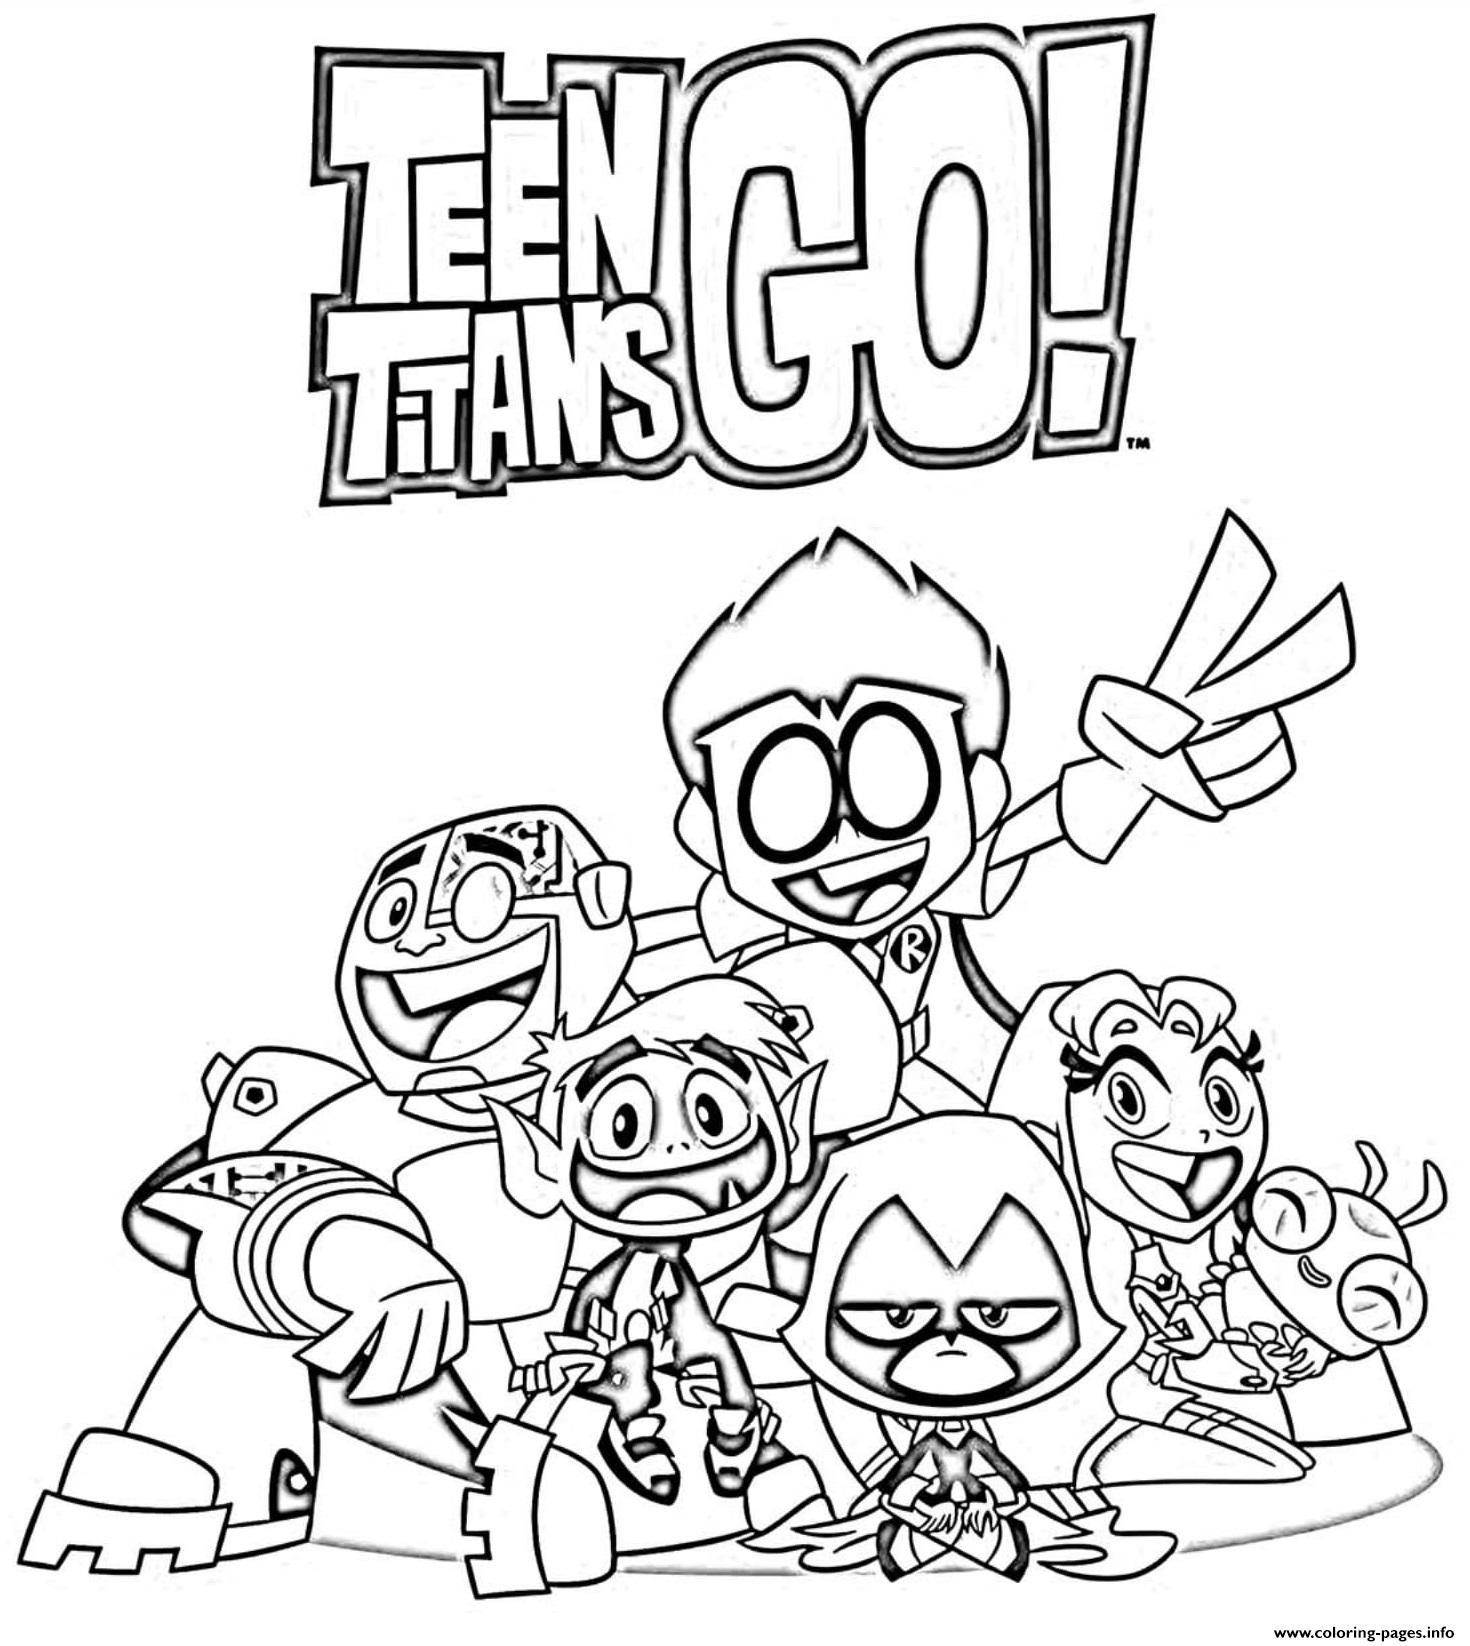 teen titans go color pages teen titans coloring pages best coloring pages for kids color titans teen go pages